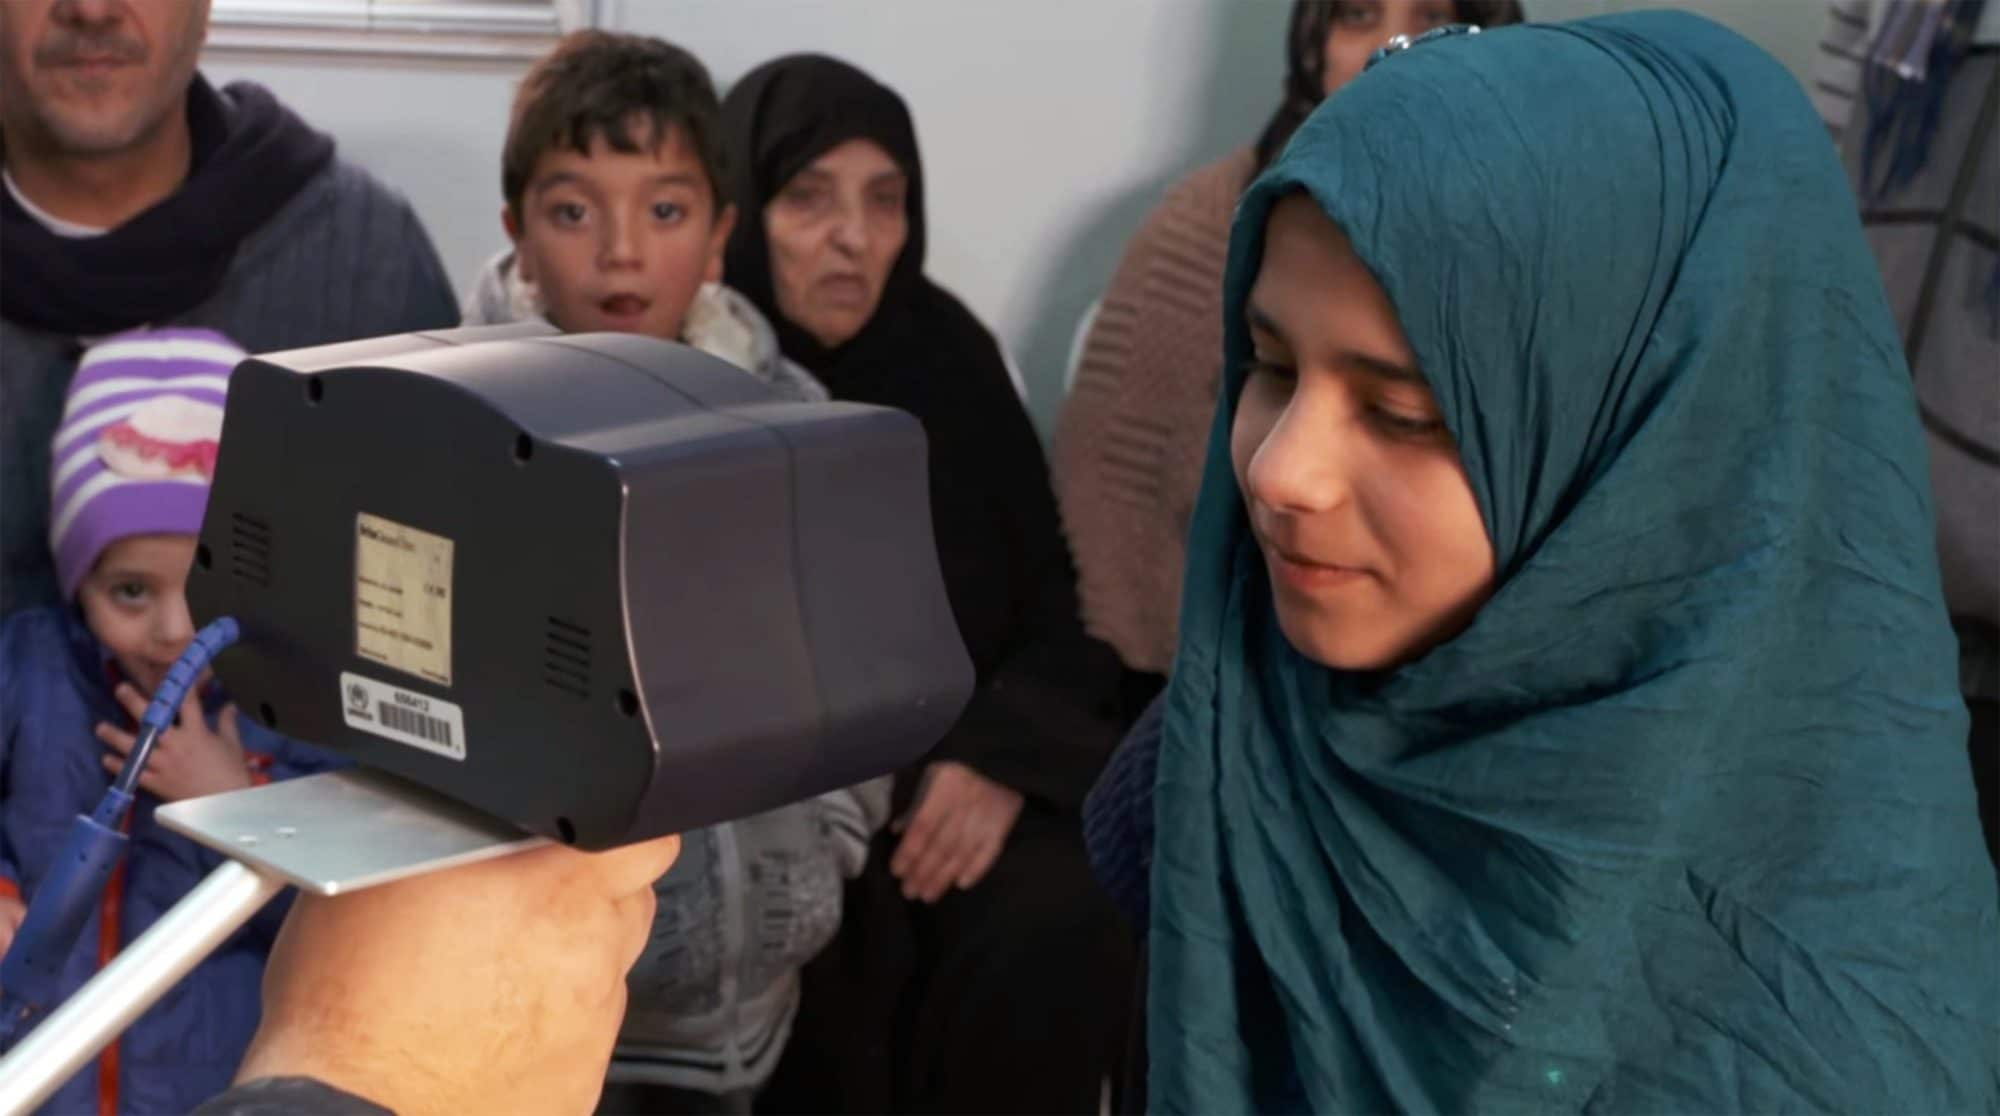 UNHCR uses biometric iris scanning to register hundreds of refugees